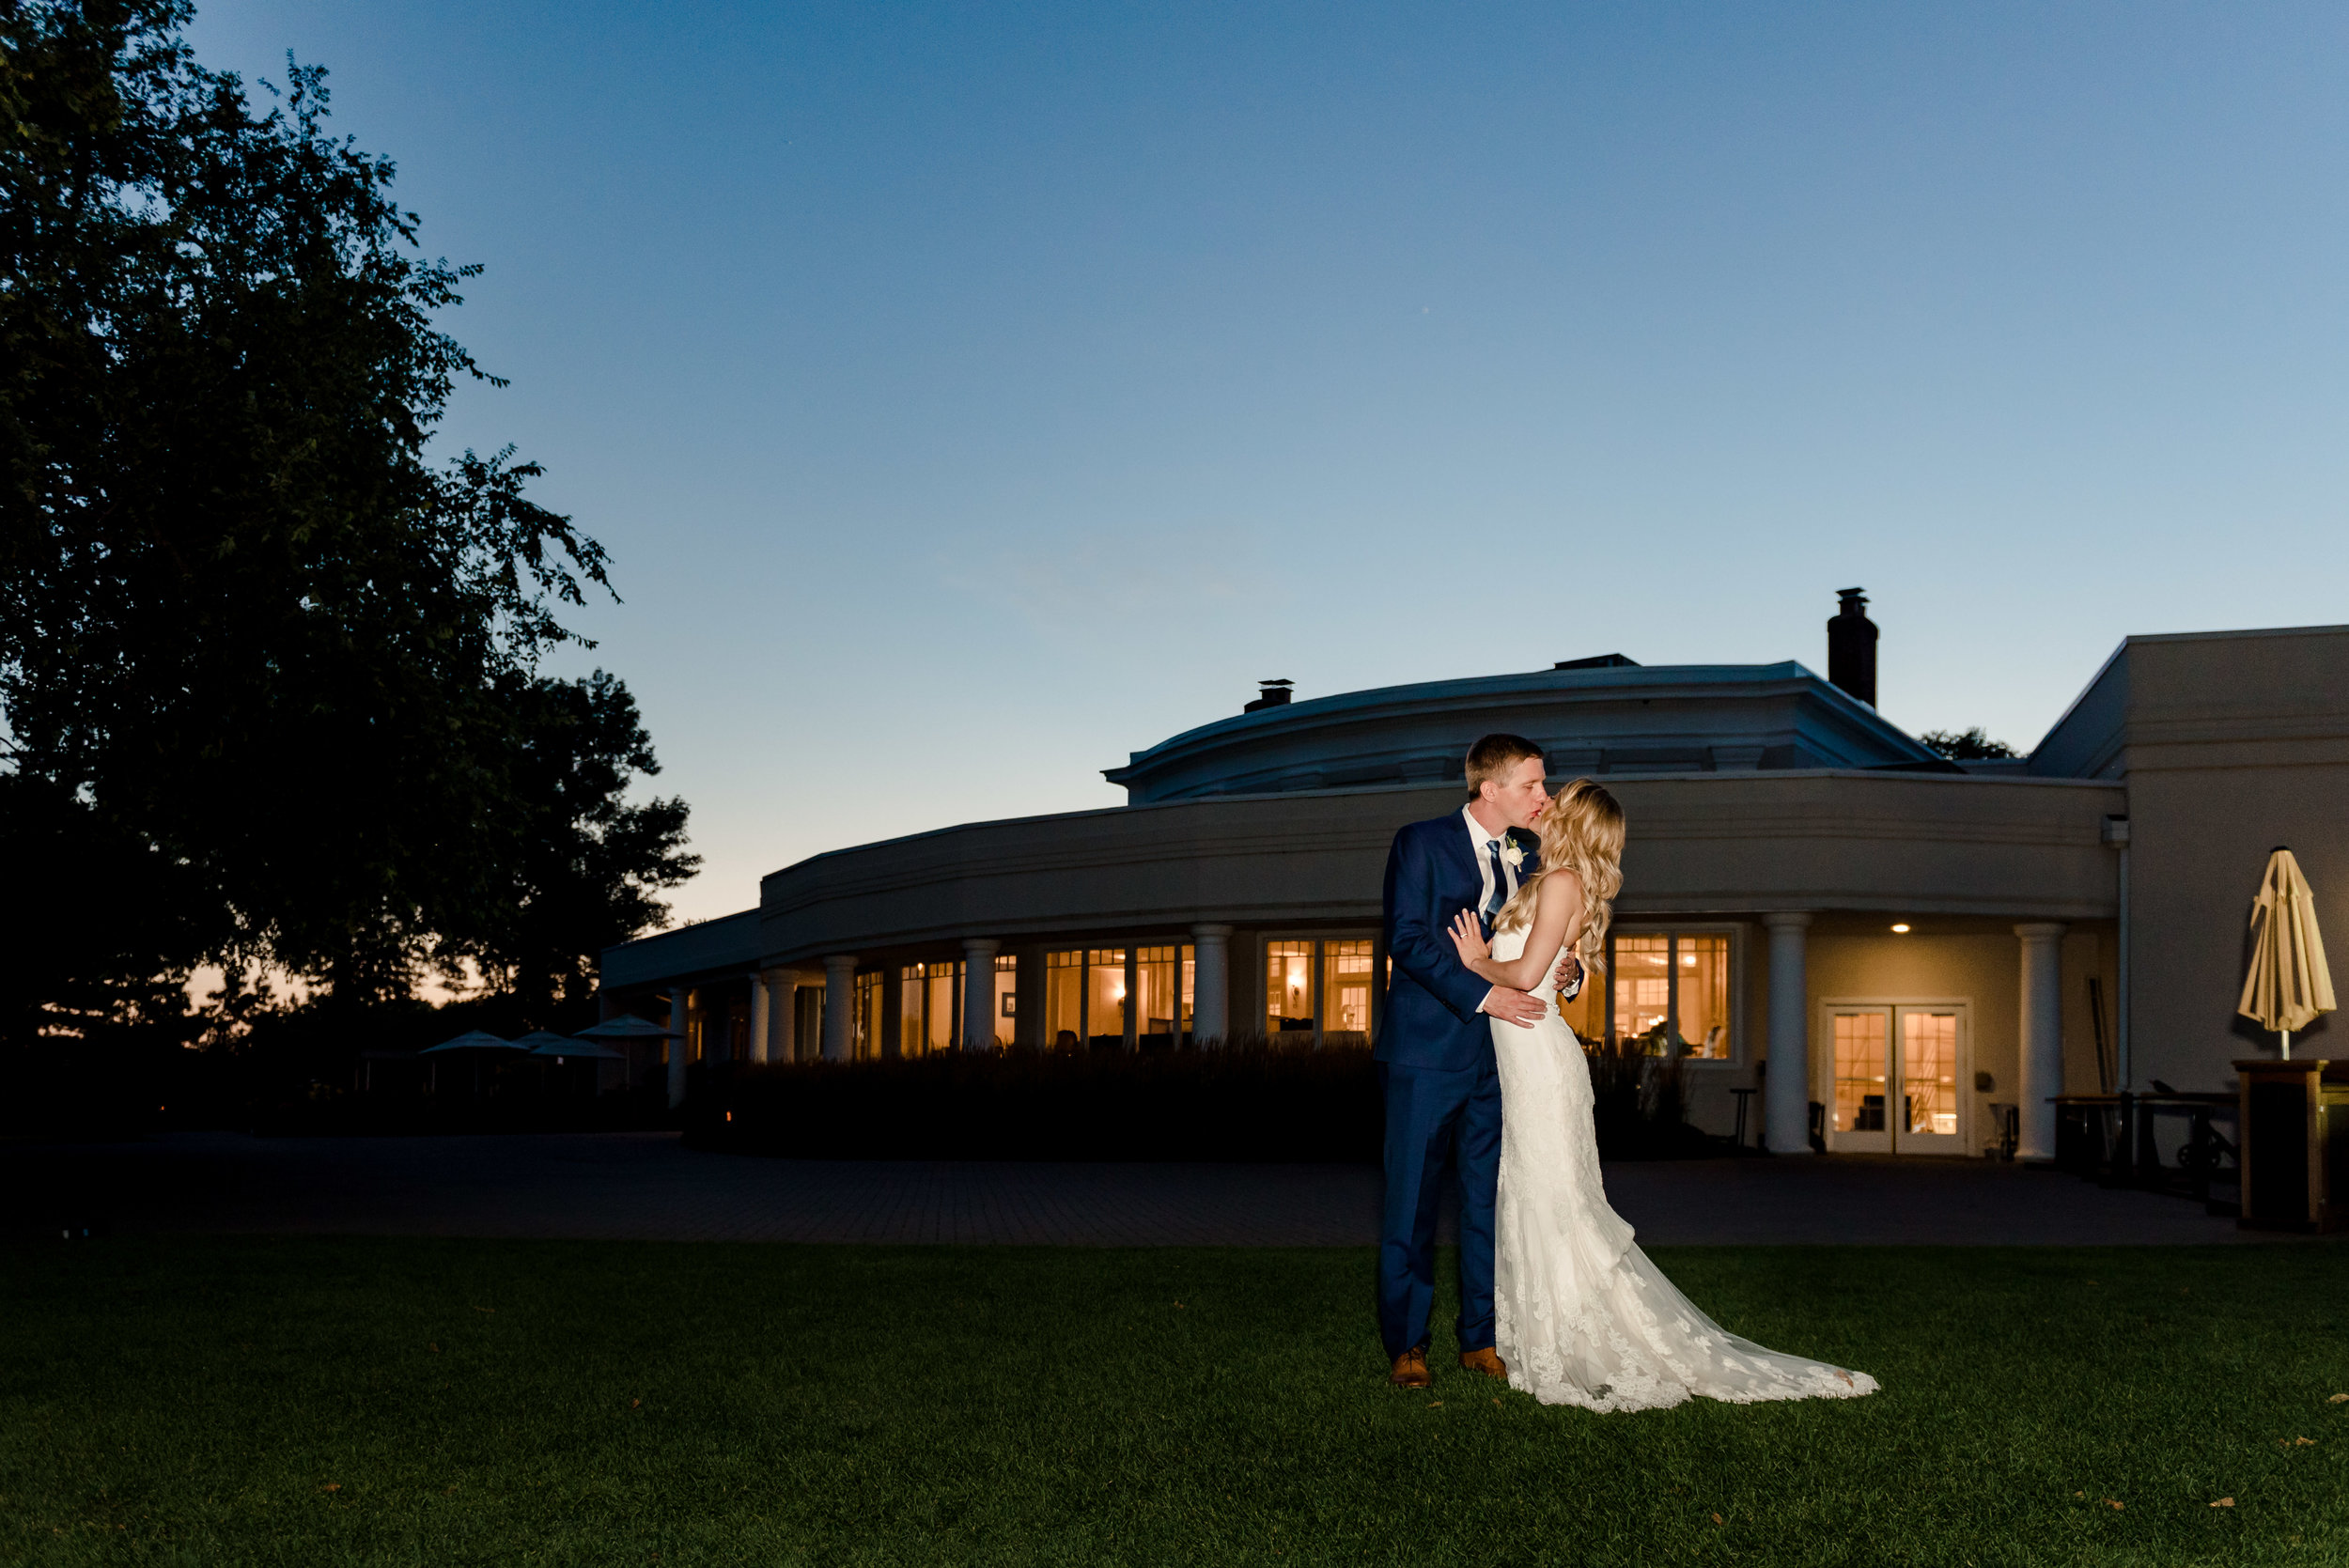 Minneapolis Golf Club Wedding Sunset Portrait - MN Wedding Photographer